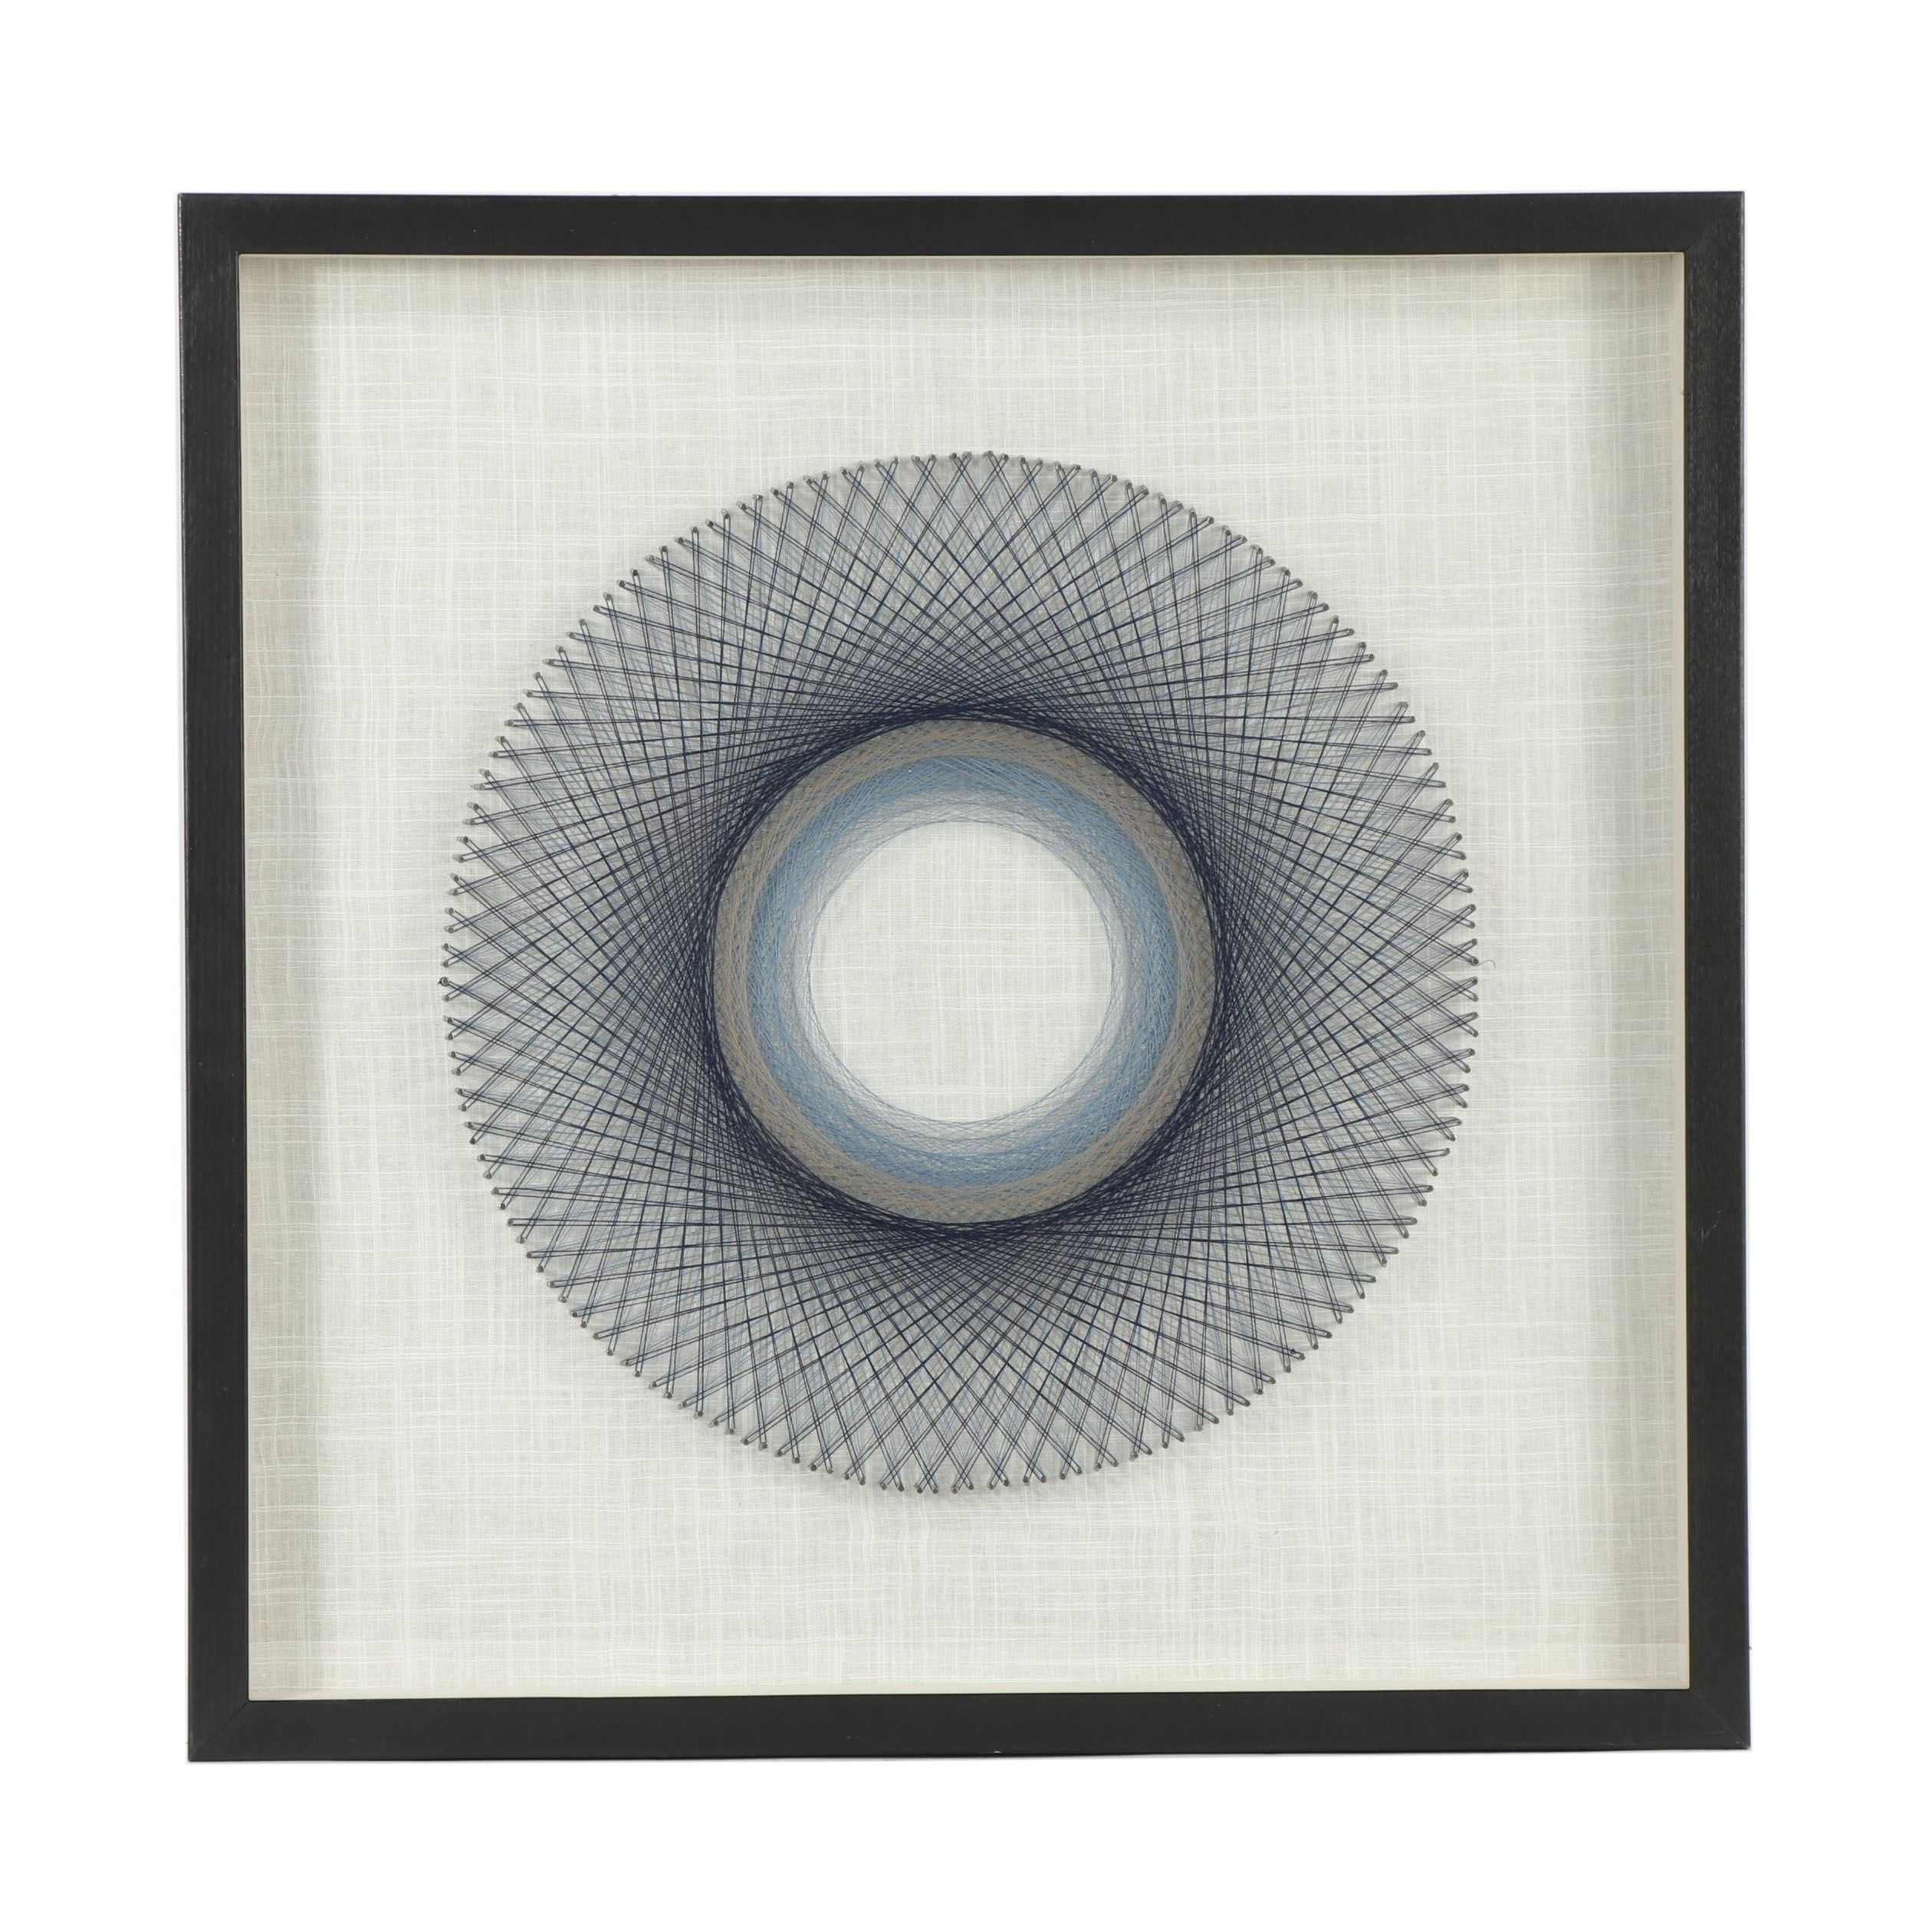 Contemporary Pin and Thread Wall Art